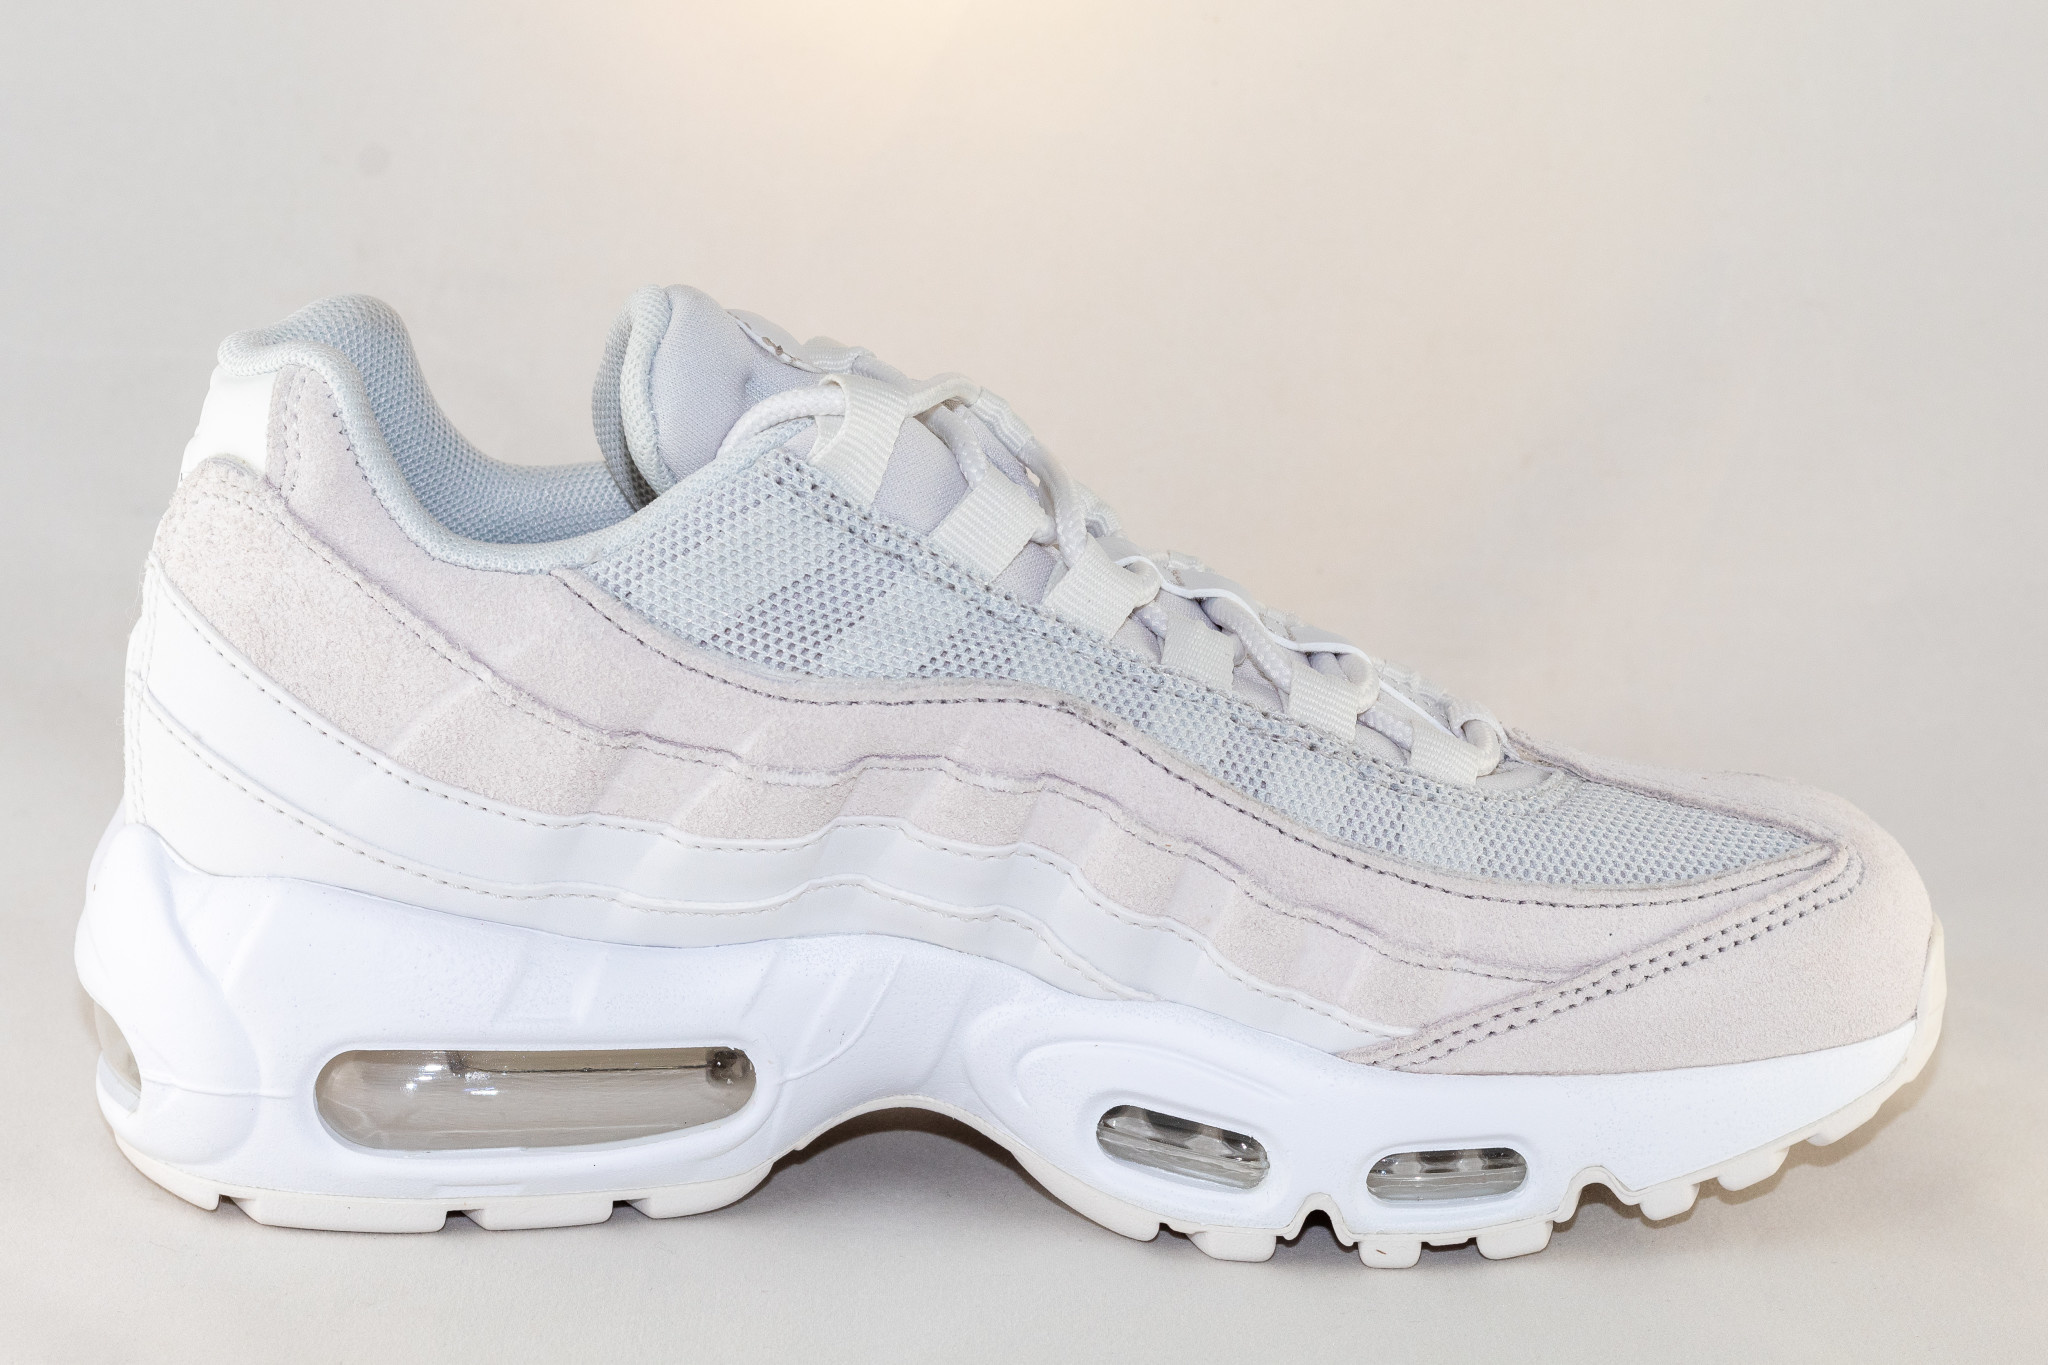 Nike W NIKE AIR MAX 95 PRM Platinium Tint/ Summit White